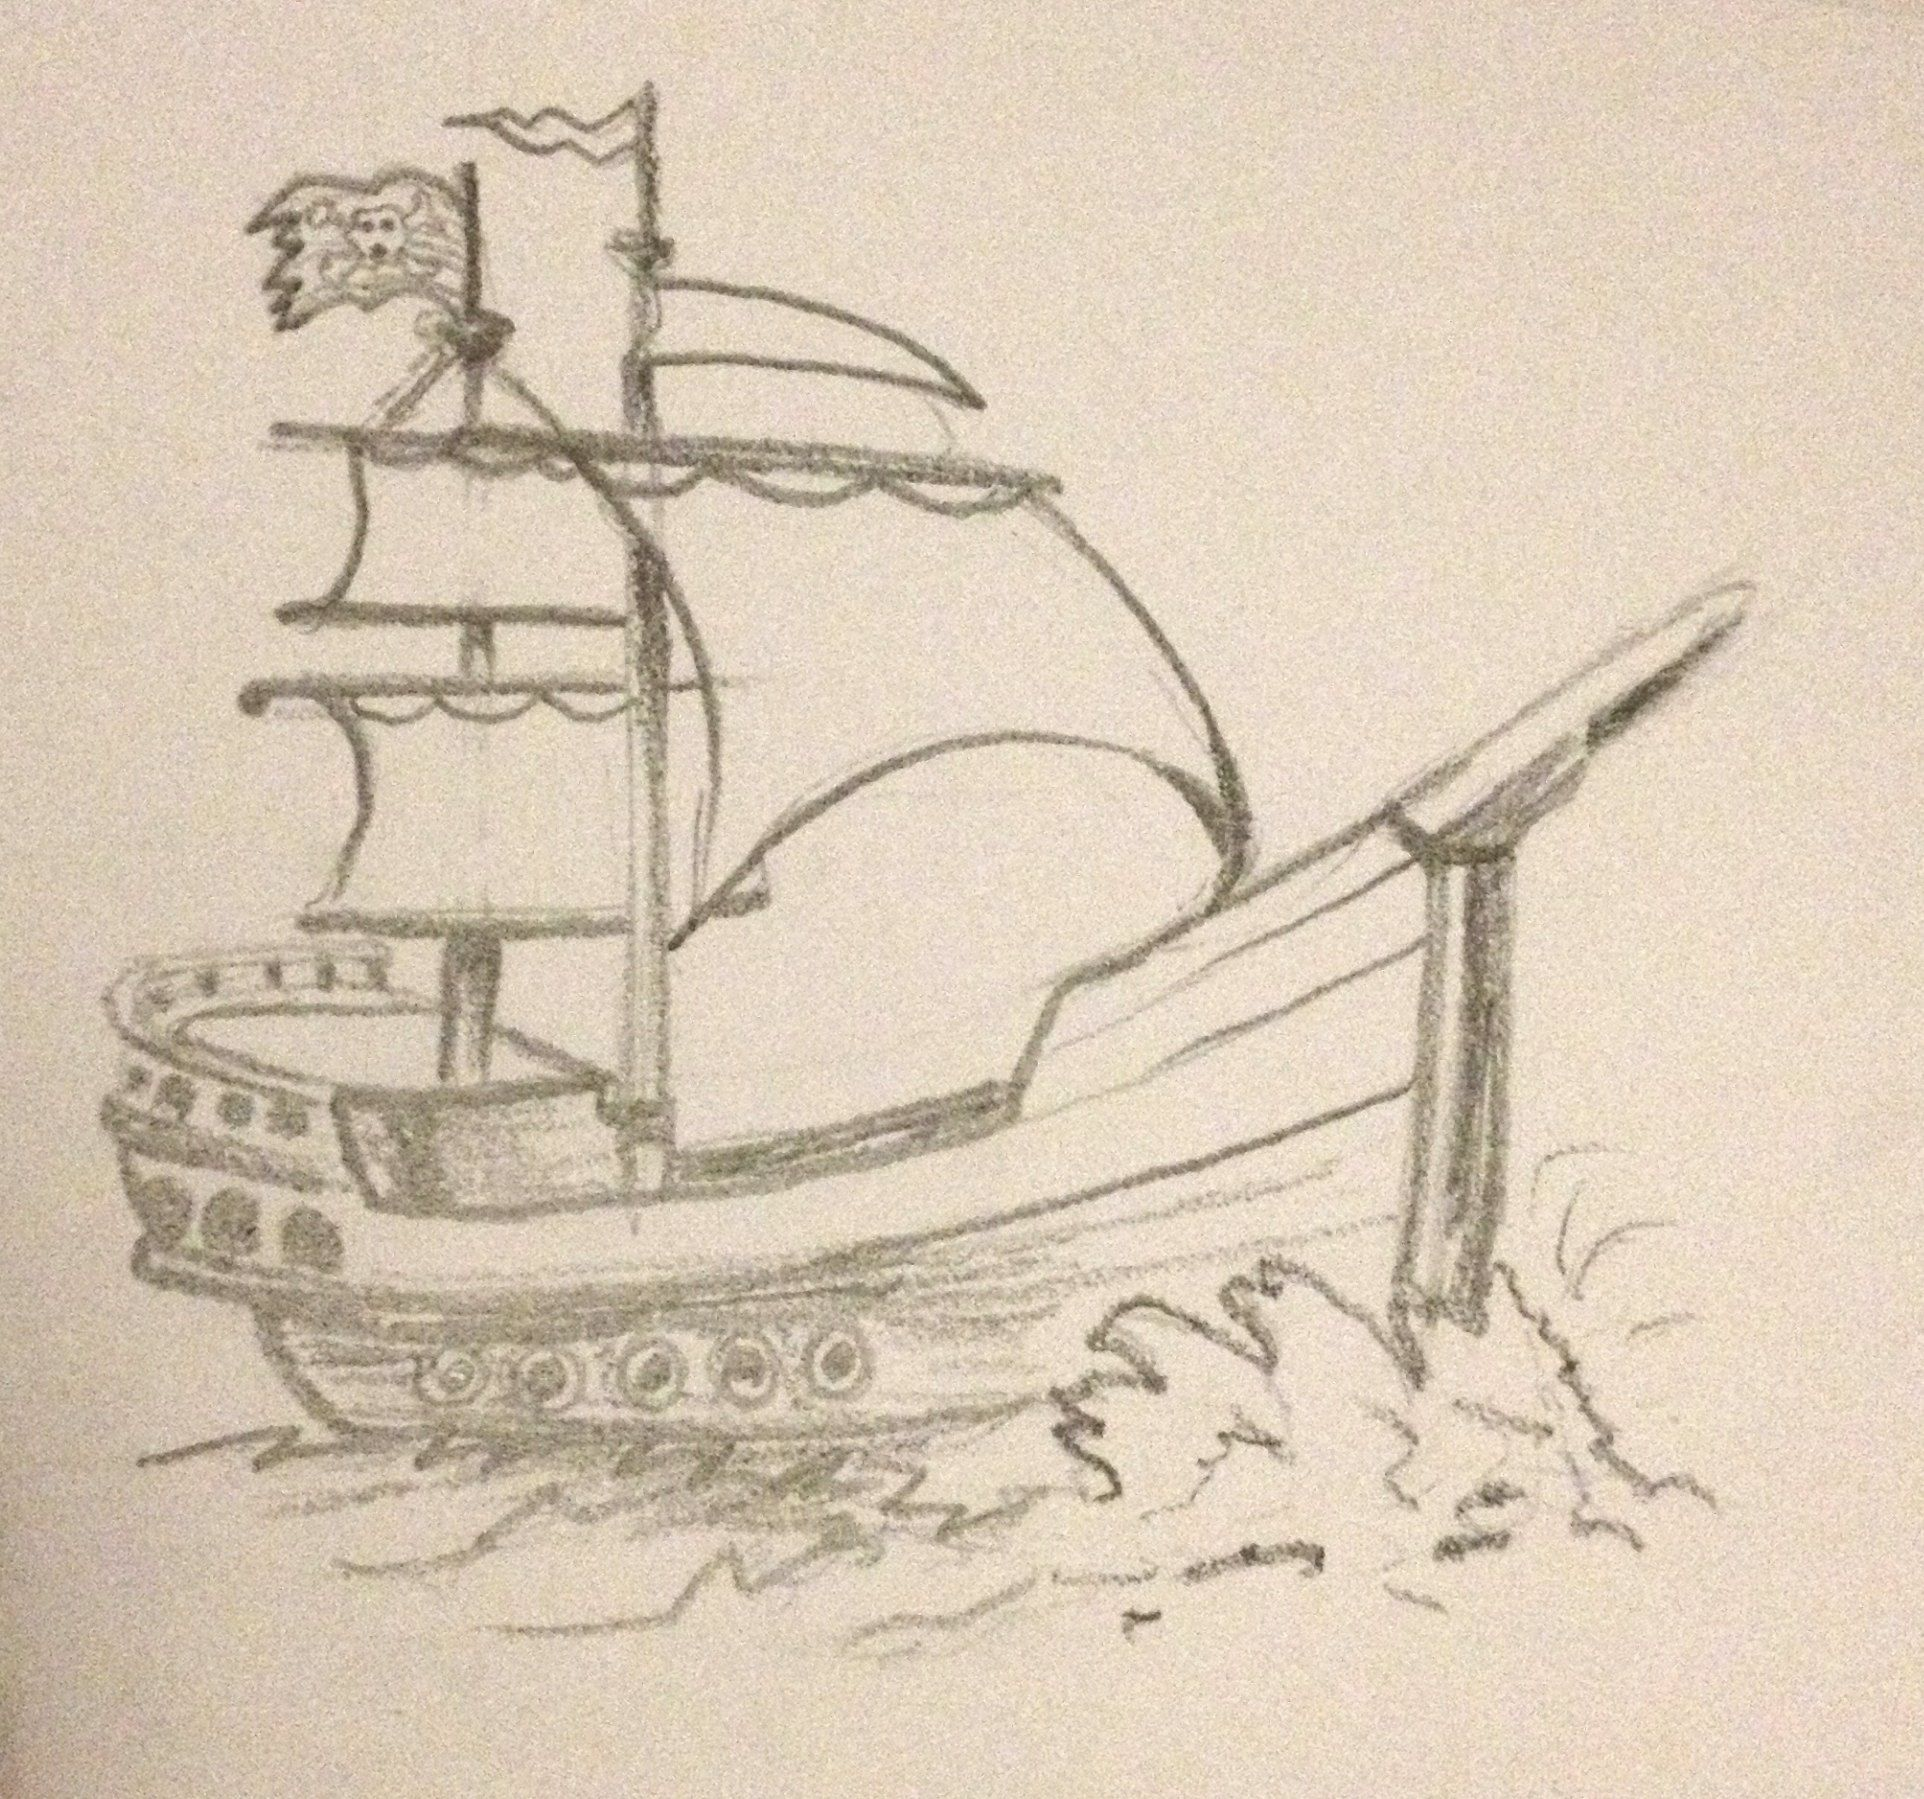 Pencil sketch pirate ship art inspiration in 2019 sketches ship